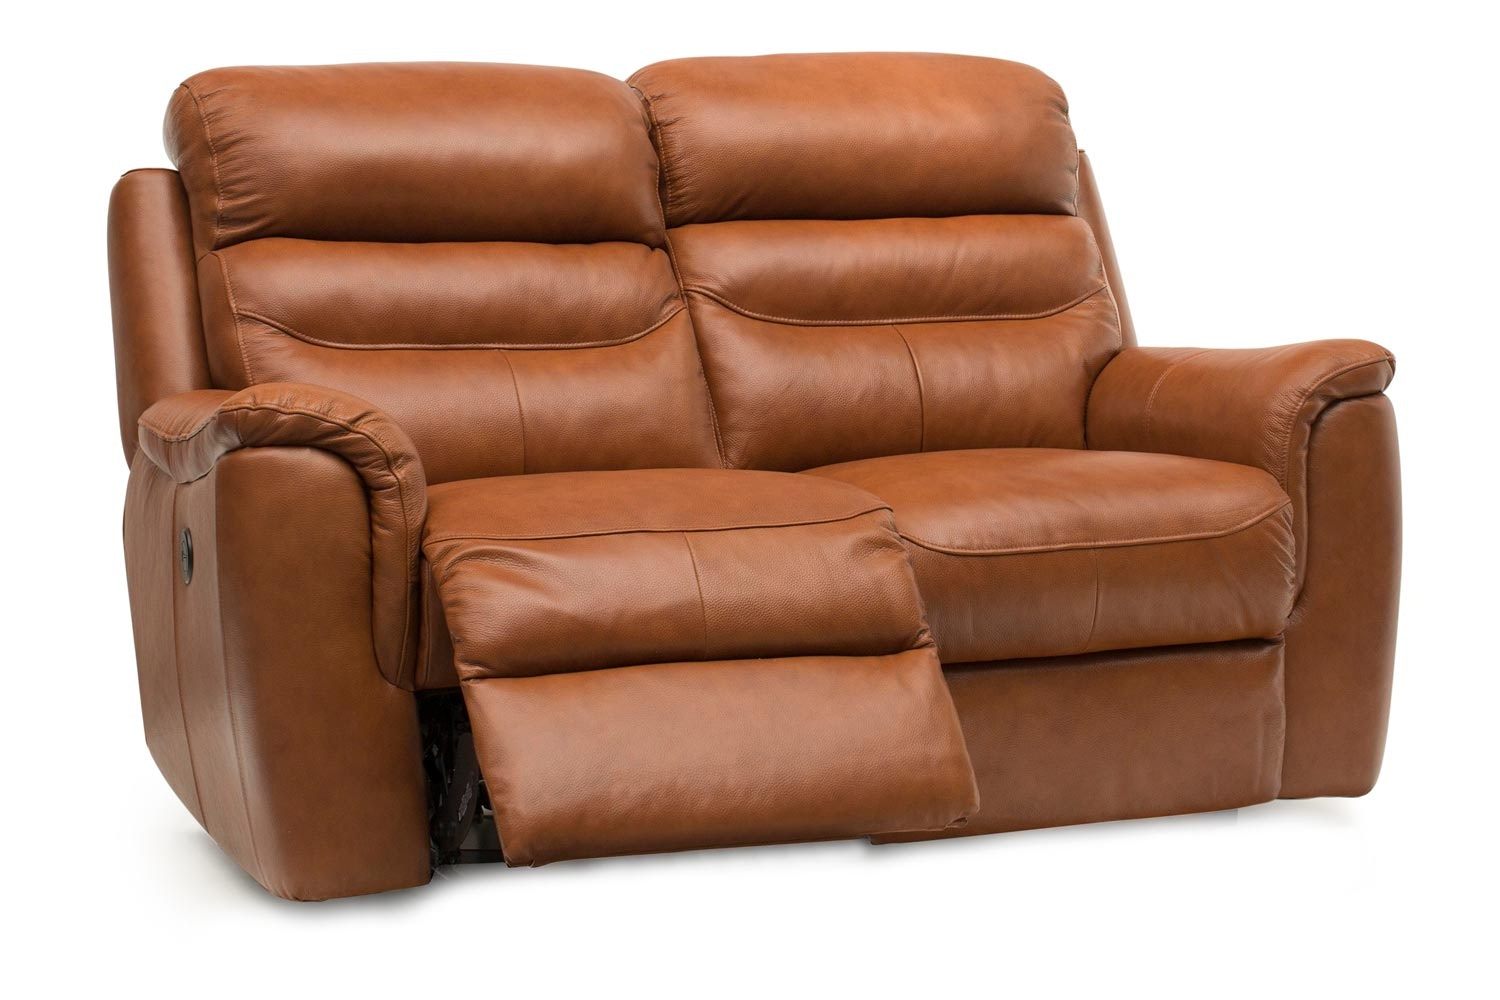 Bayle 2 Seater Leather Recliner Sofa | Electric